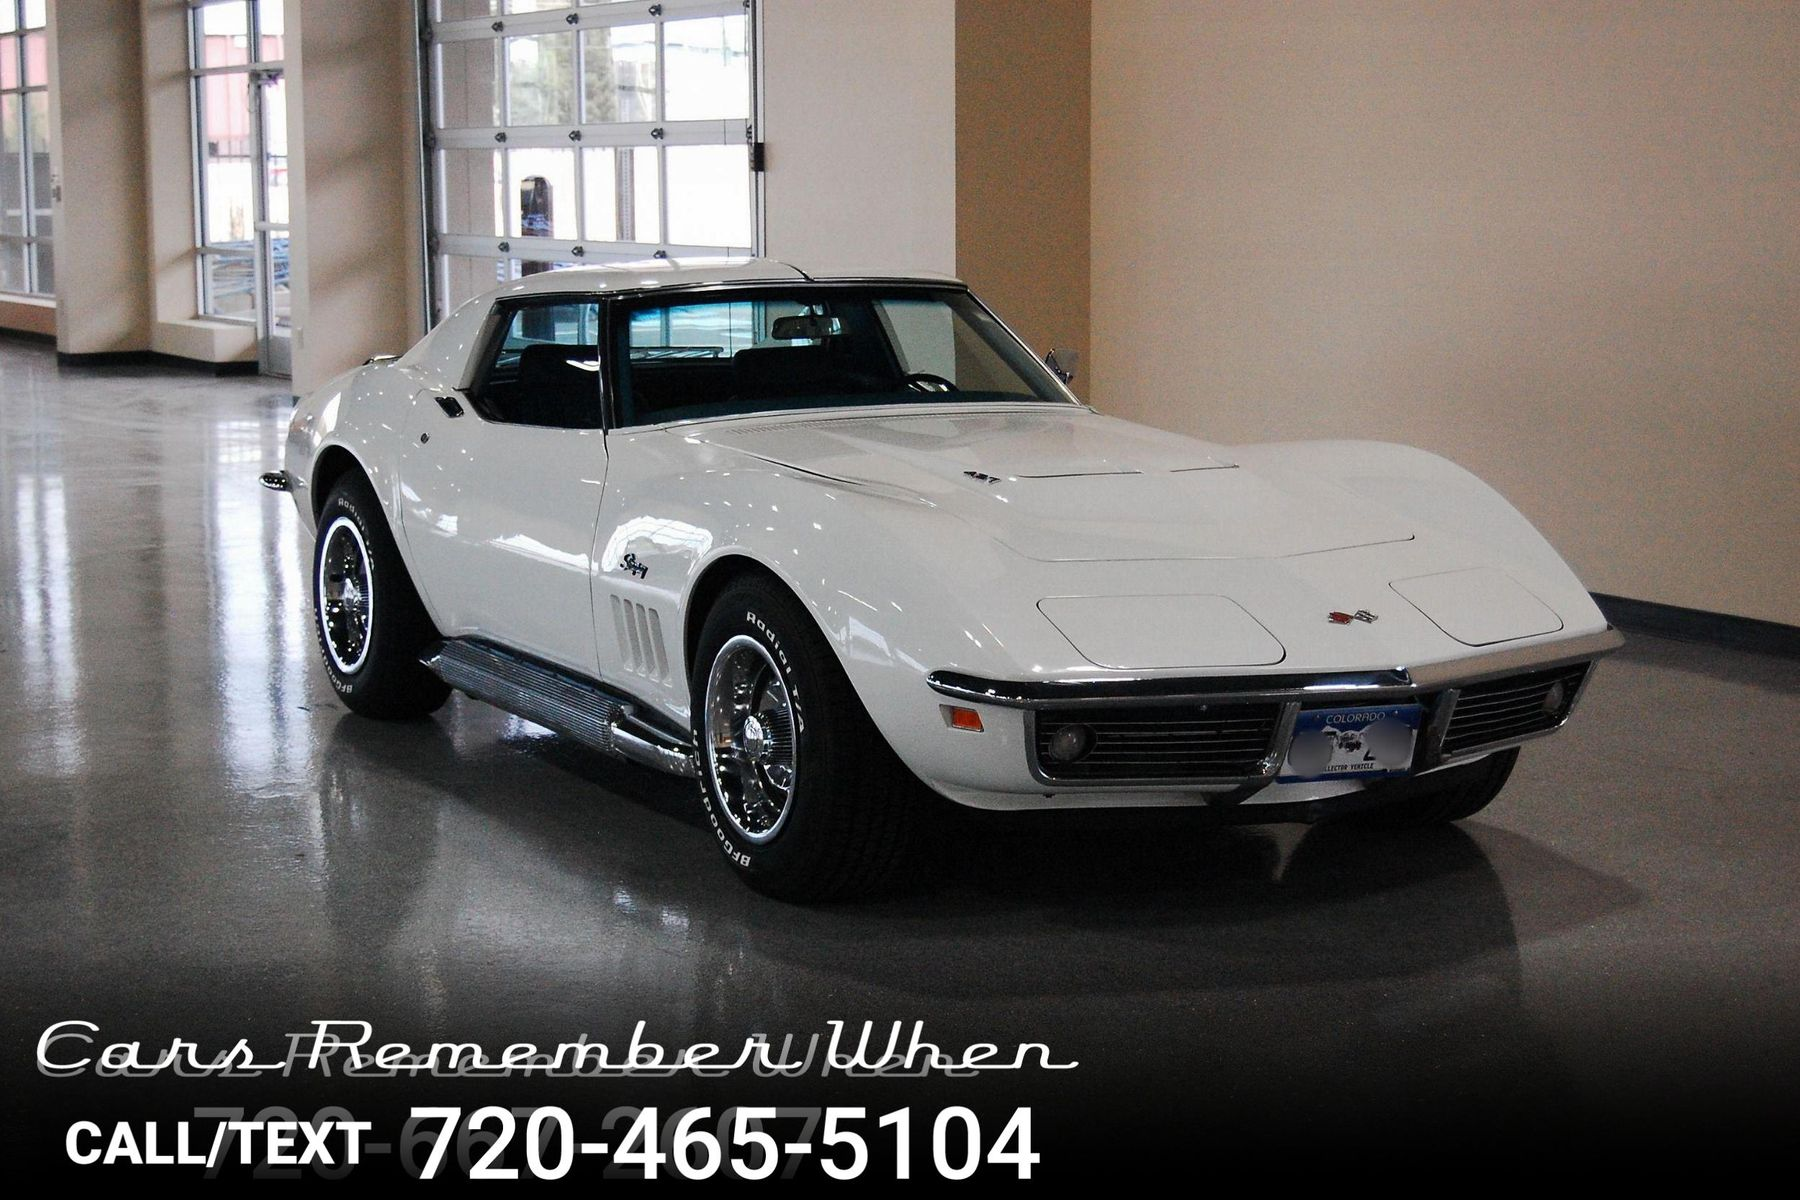 1969 Chevrolet Corvette Sport Coupe